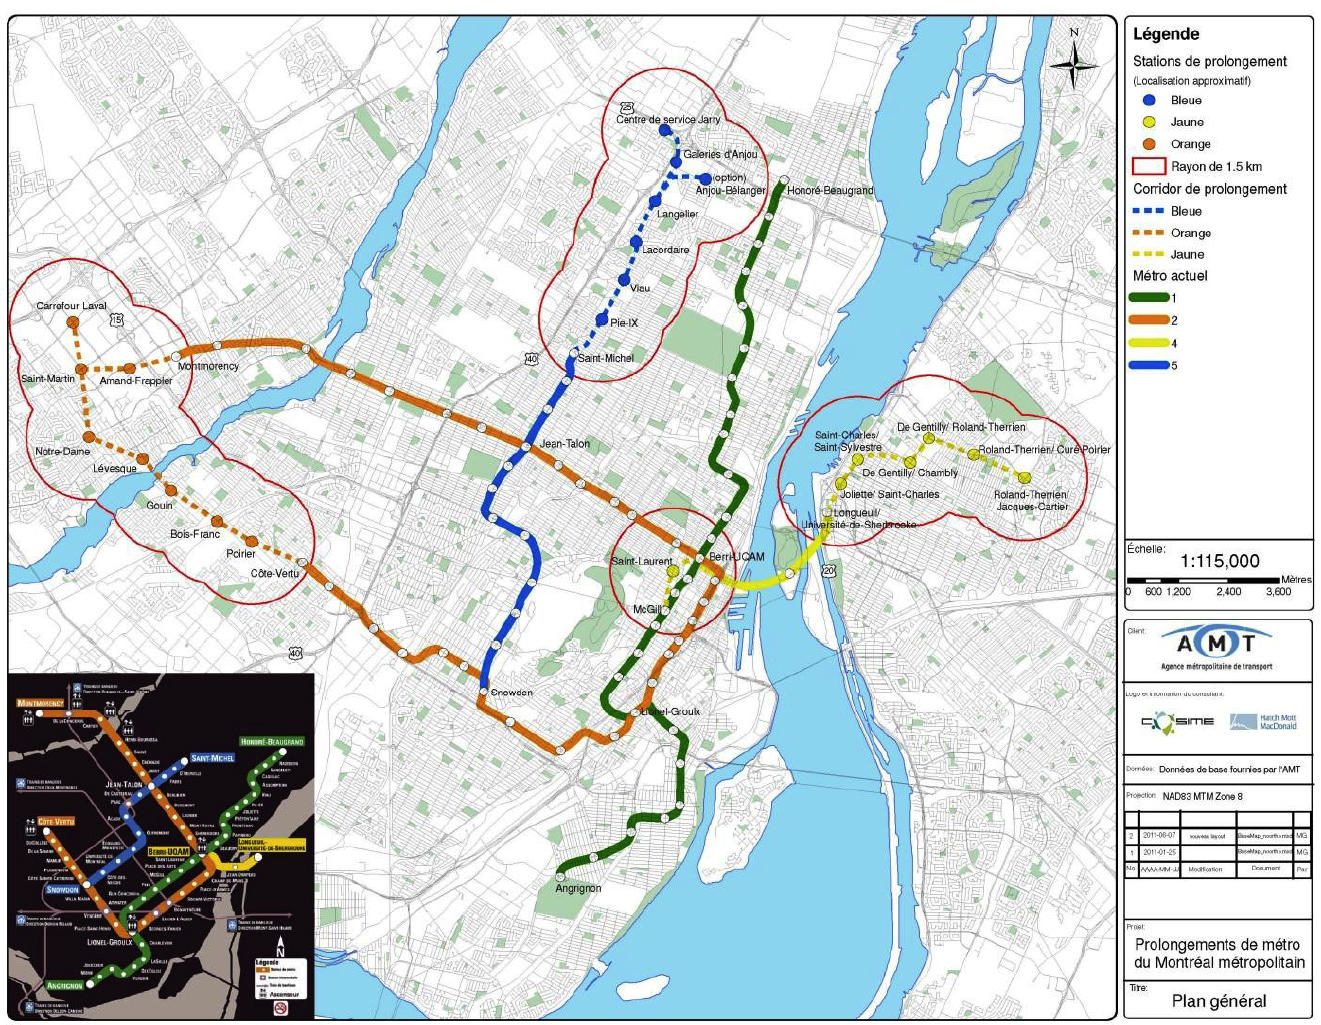 This extension map was proposed by the AMT several years ago. It demonstrates extensions further into Laval, Longueuil and the East End